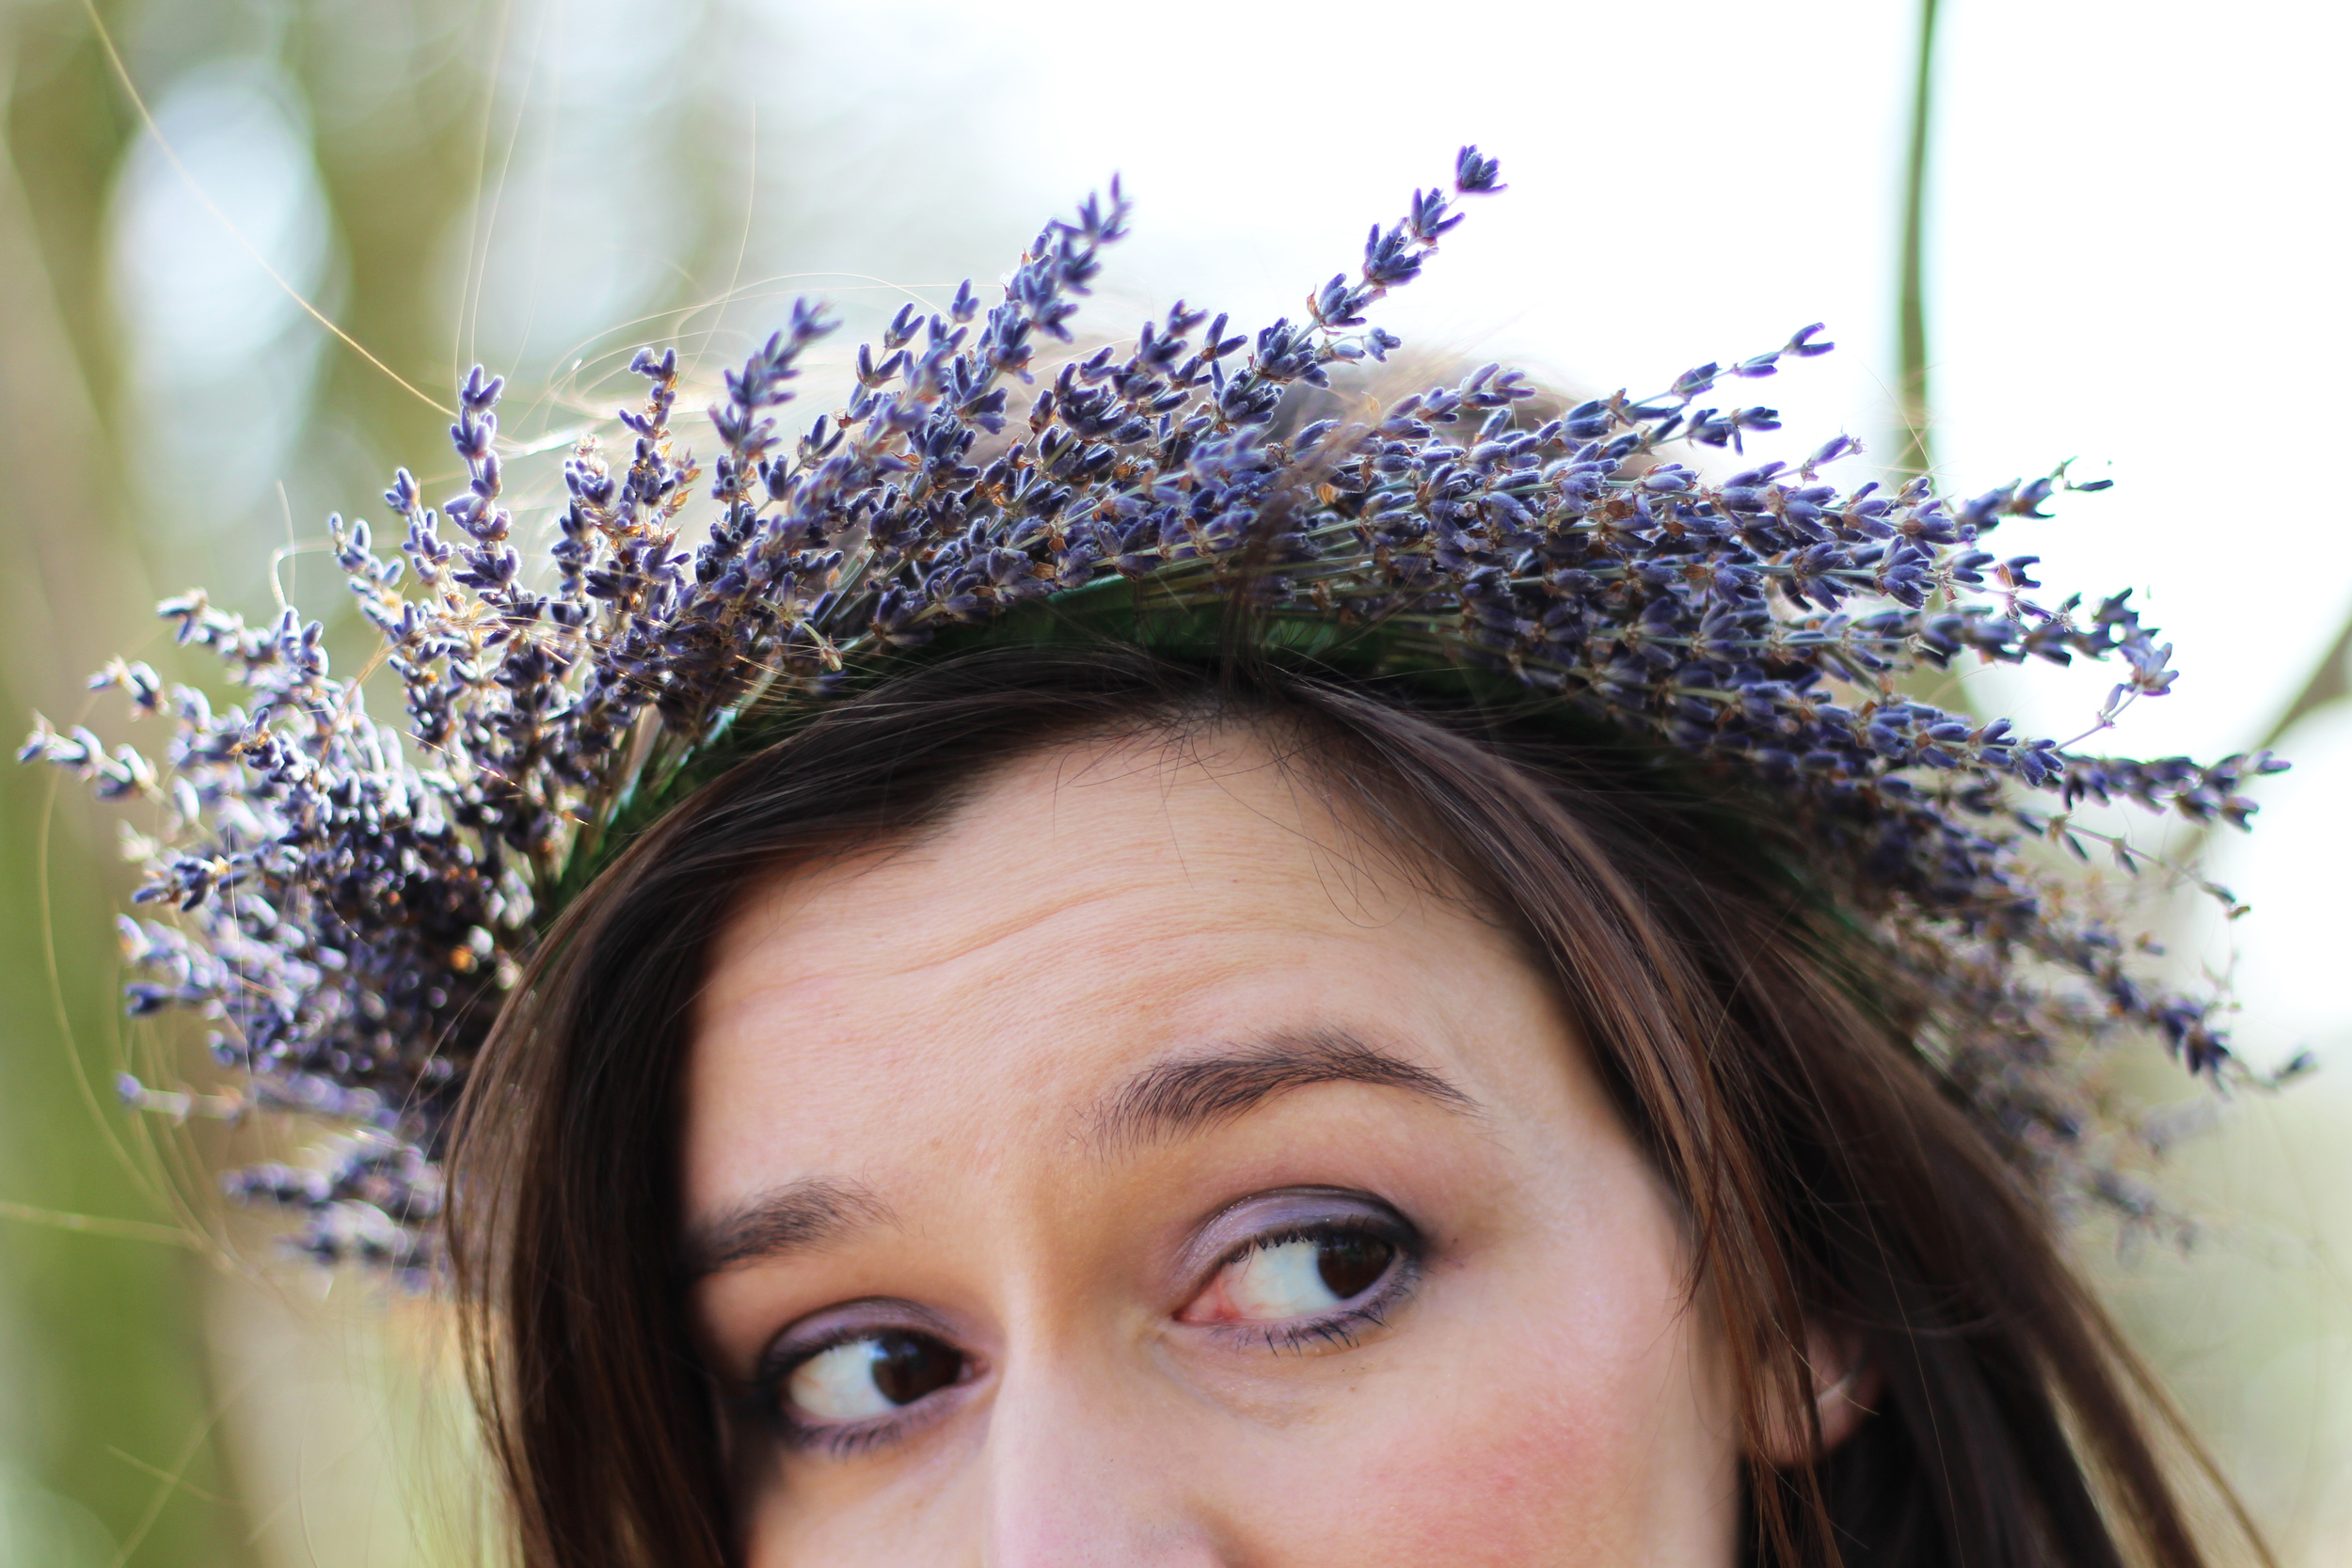 Lavender Crowning Glory!